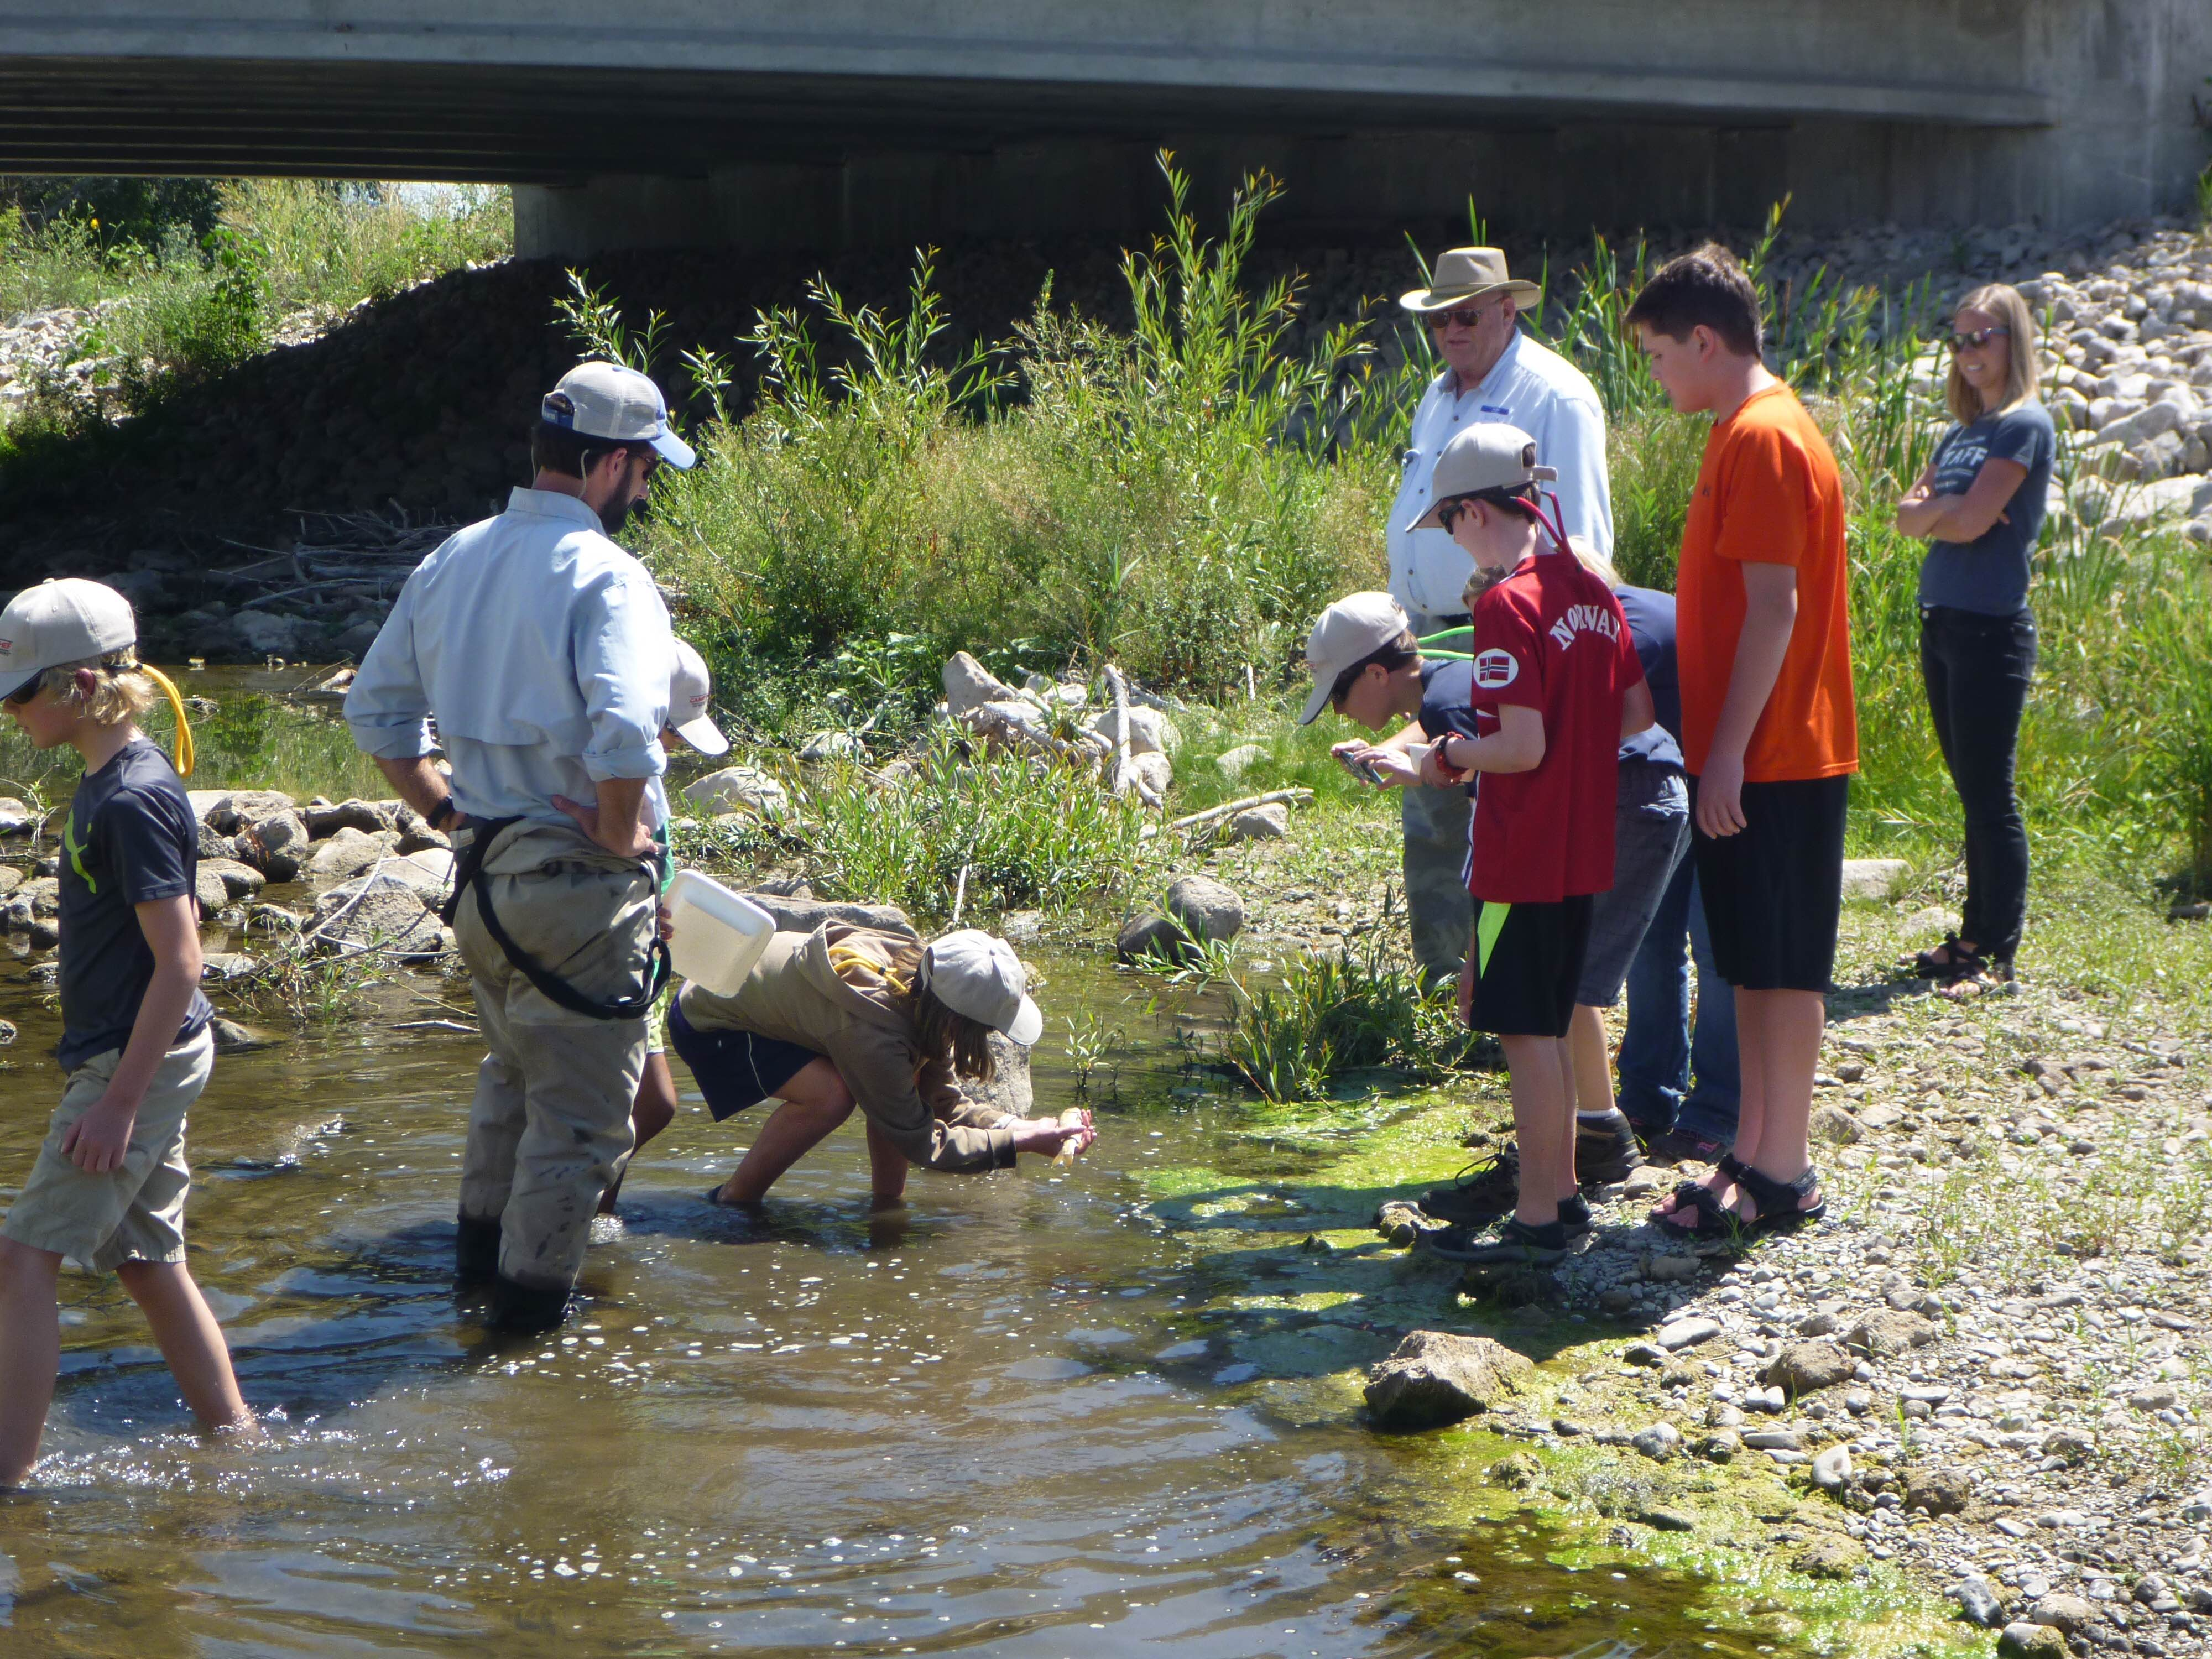 July 20-22 Kids fly fishing camp in conjunction with Stokes Nature